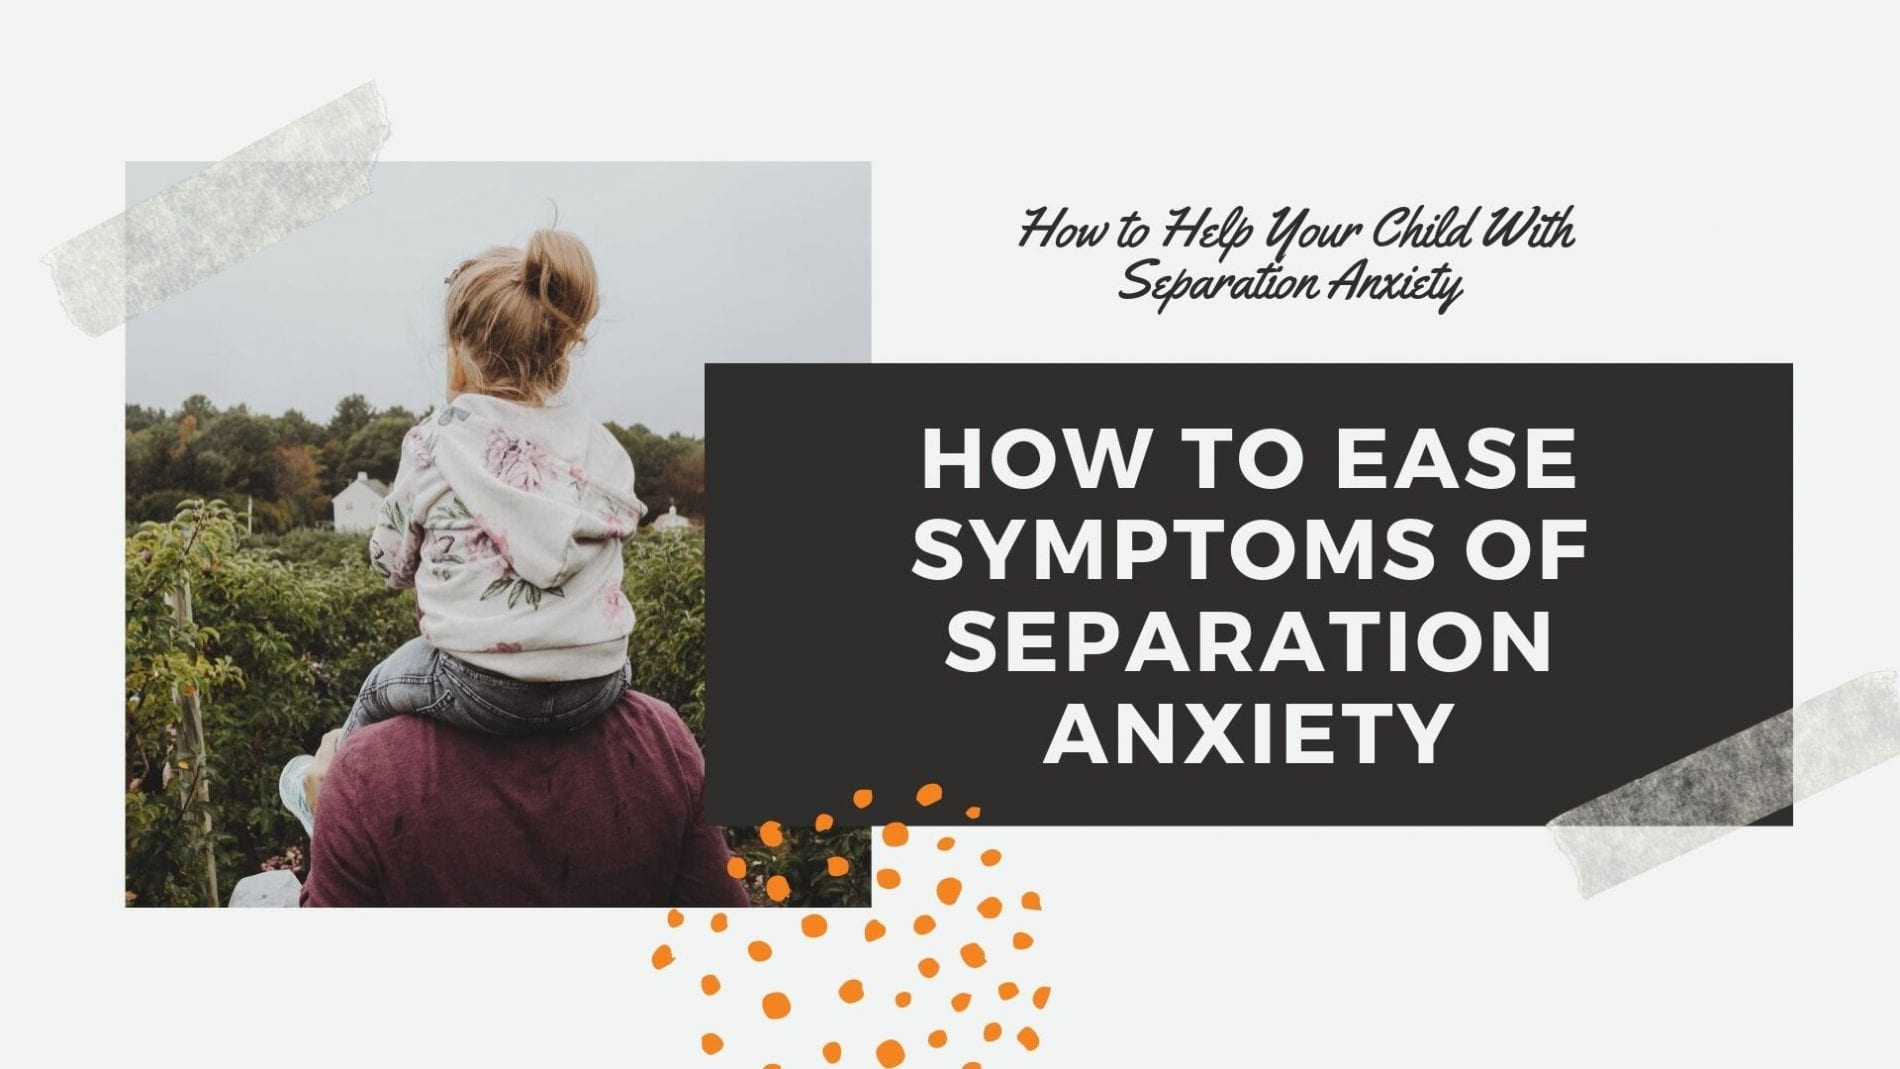 How to Help Your Child With Separation Anxiety